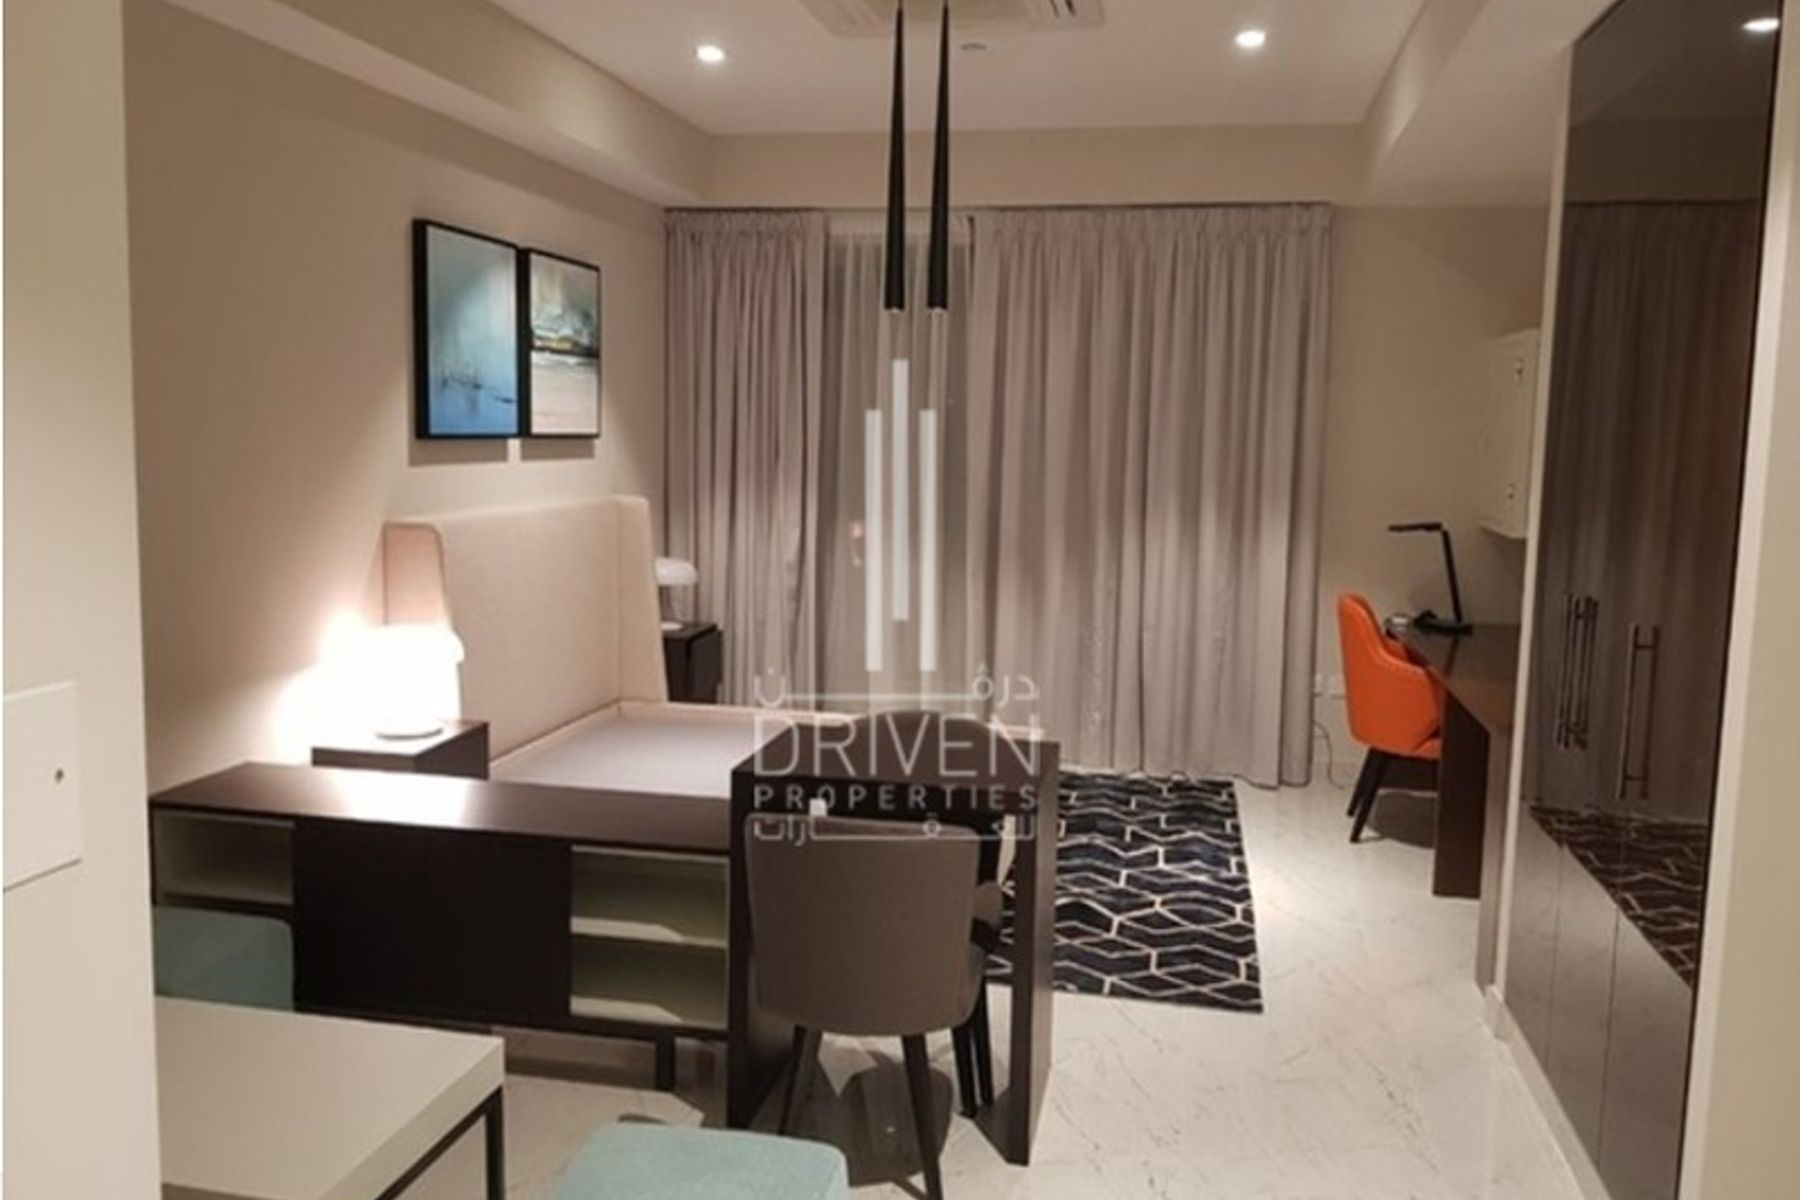 Studio for Sale in MAG Eye - Mohammed Bin Rashid City